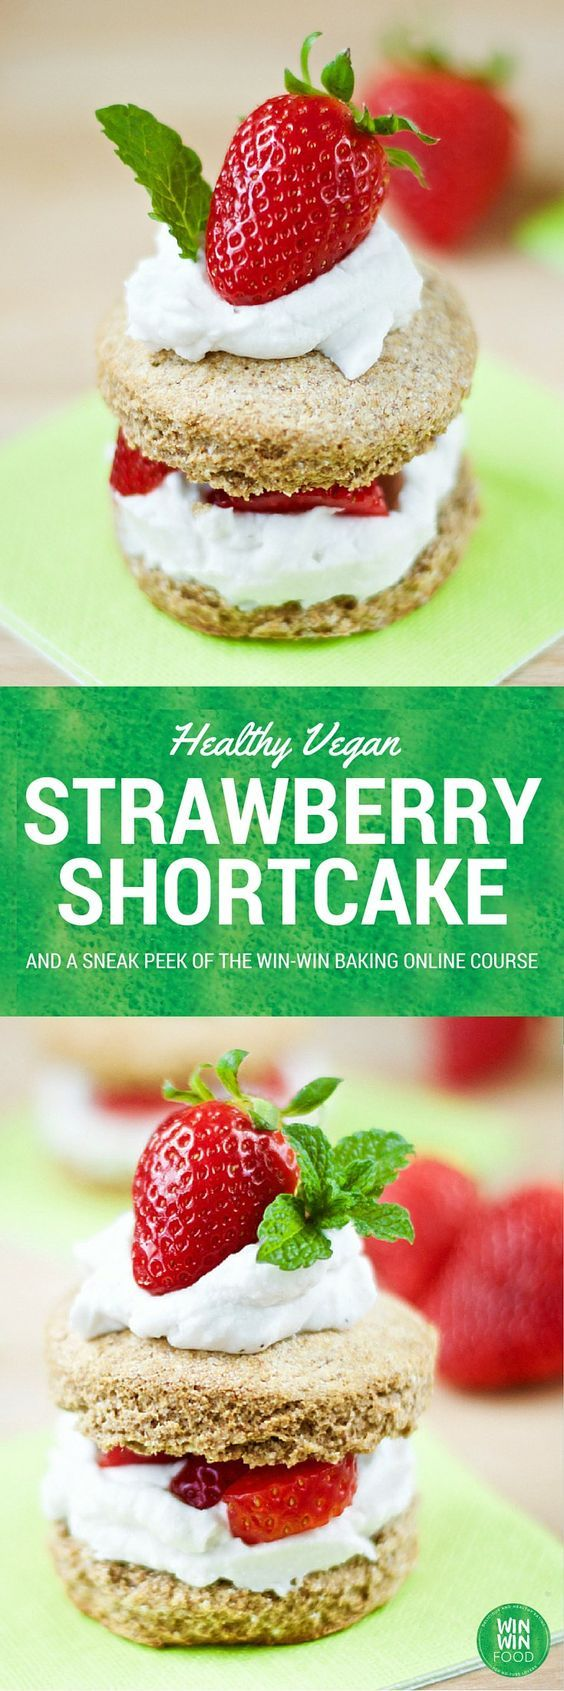 Healthy Vegan Strawberry Shortcake | WIN-WINFOOD.com and a sneak peek of the online baking course! #healthy #vegan #baking